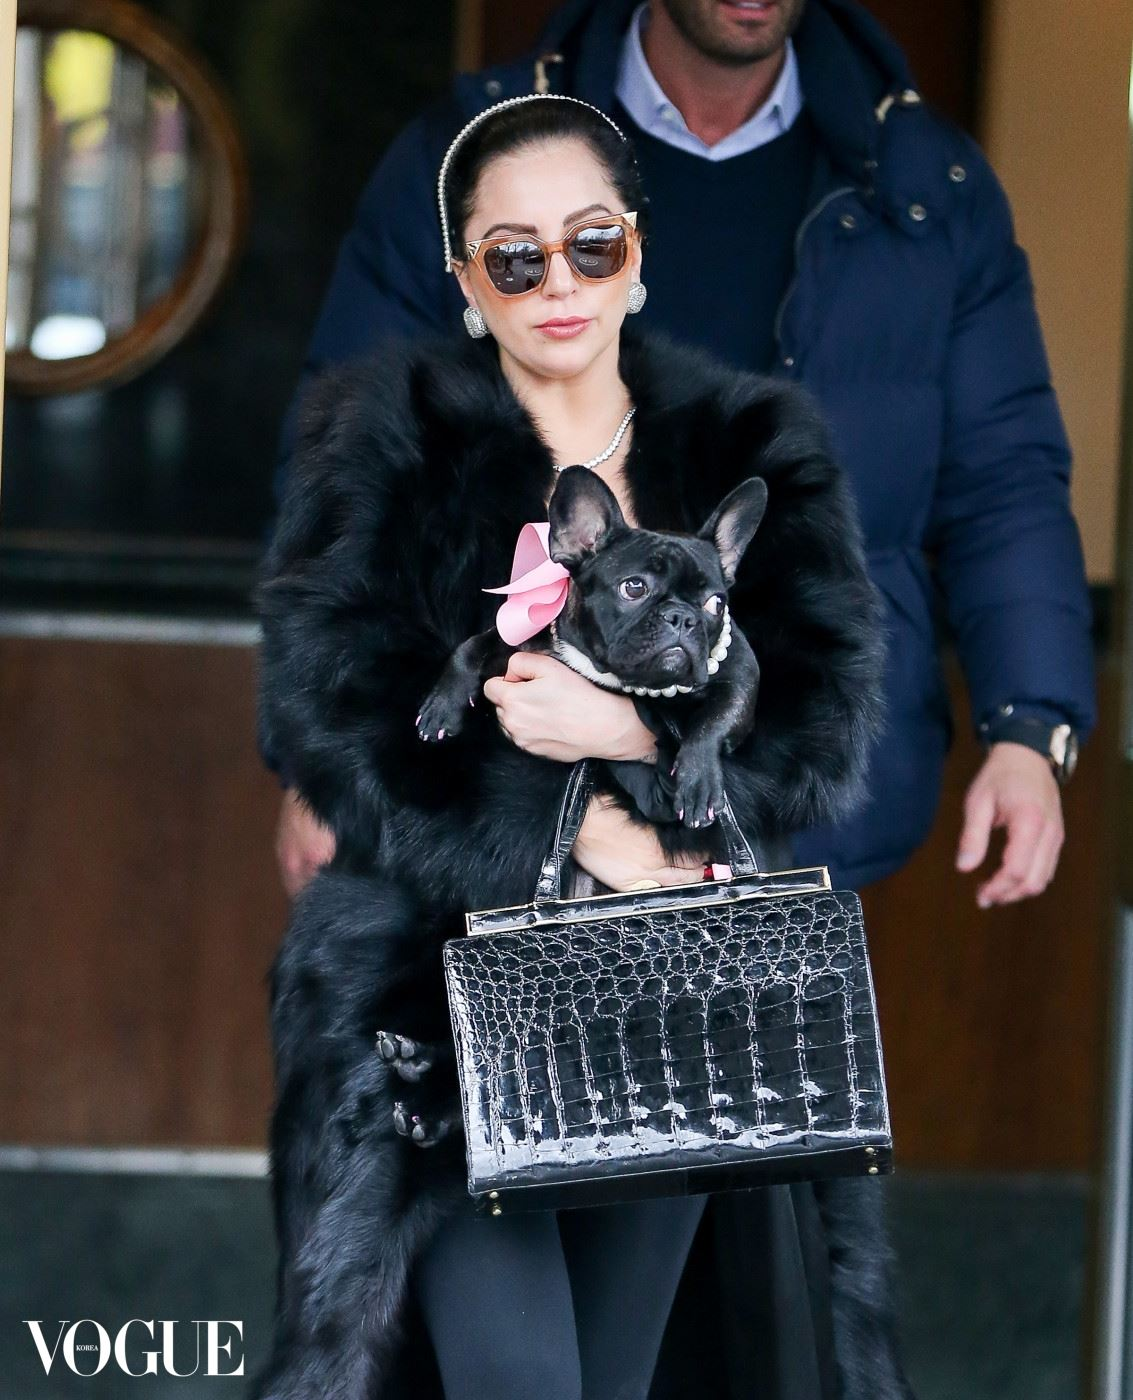 Lady Gaga and her dog Asia spotted matching headbands while their leaving in New York City. Pictured: Lady Gaga Ref: SPL916702  221214   Picture by: Santi/Splash News Splash News and Pictures Los Angeles:	310-821-2666 New York:	212-619-2666 London:	870-934-2666 photodesk@splashnews.com